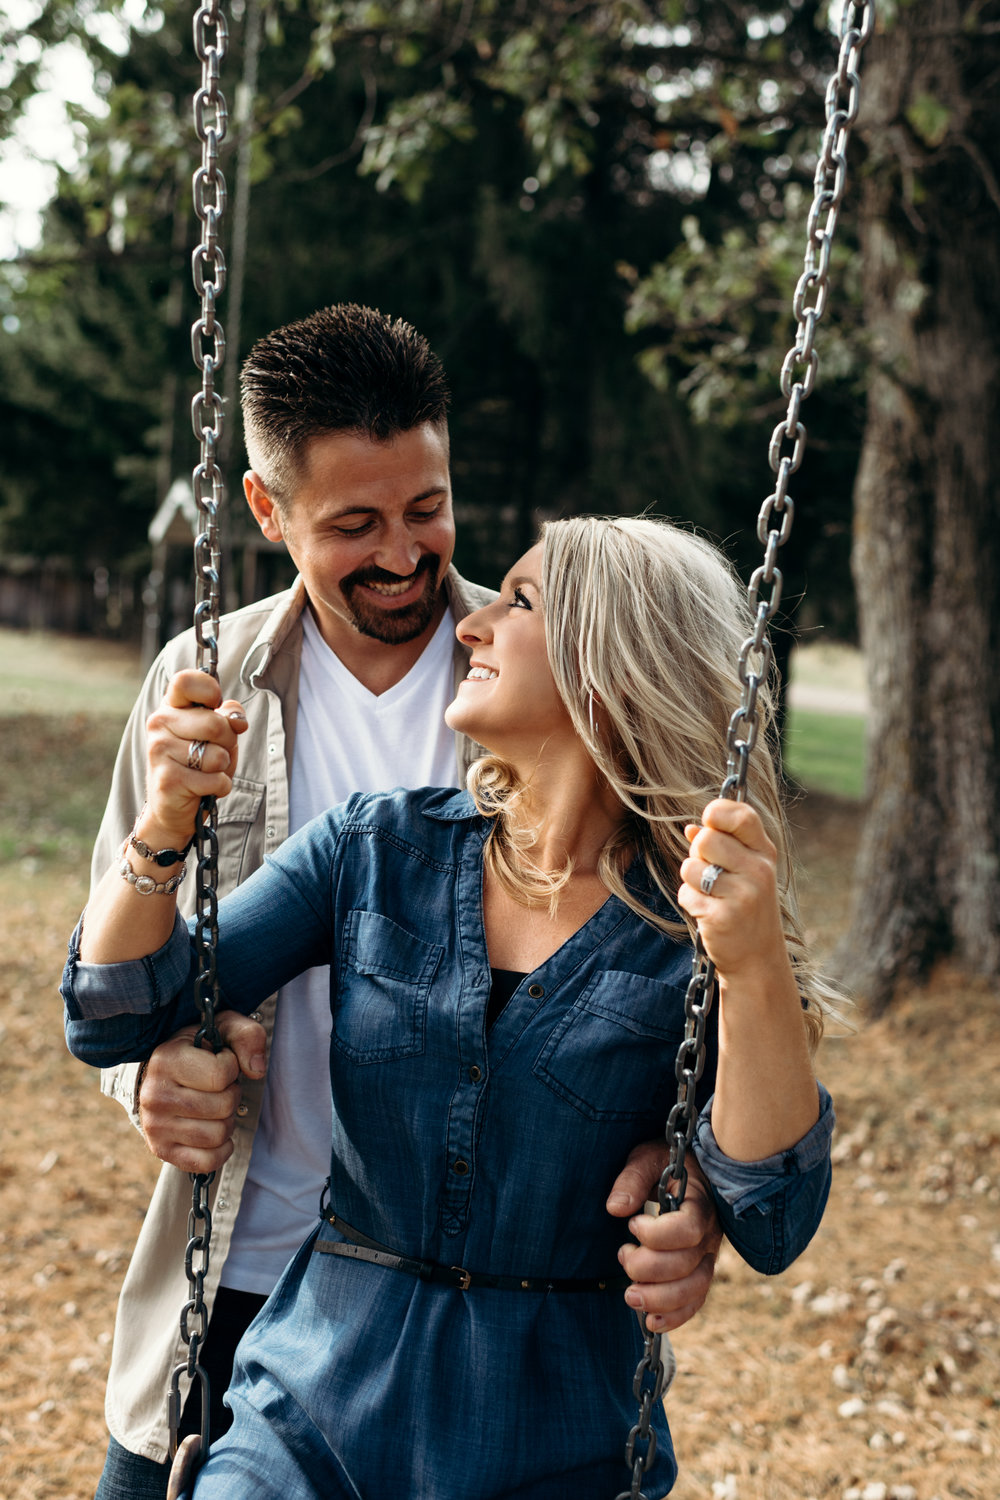 Man pushes his fiancé on a swing as they smile at each other.